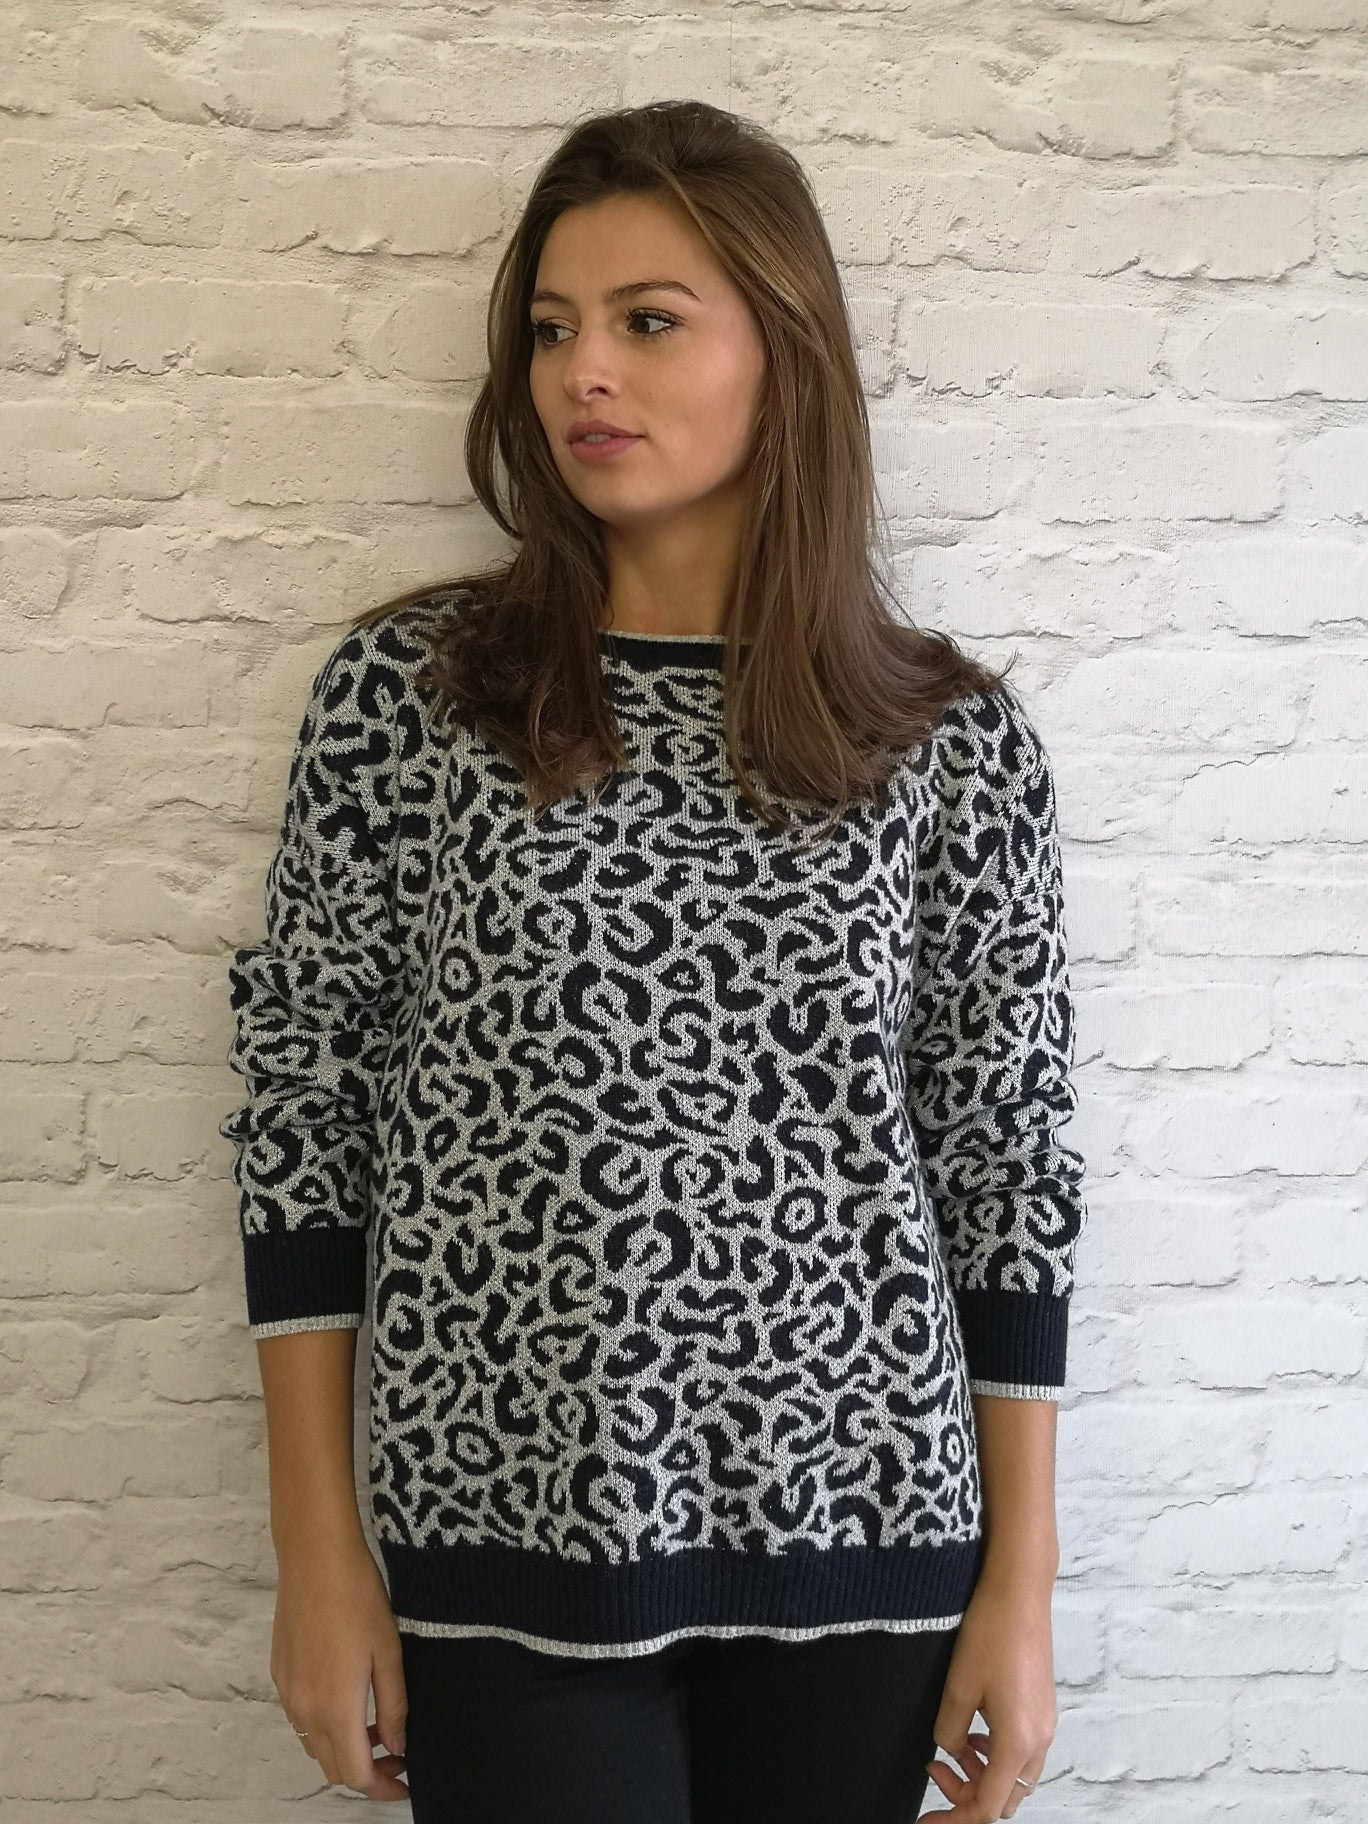 Silver & Navy Leopard Sweater